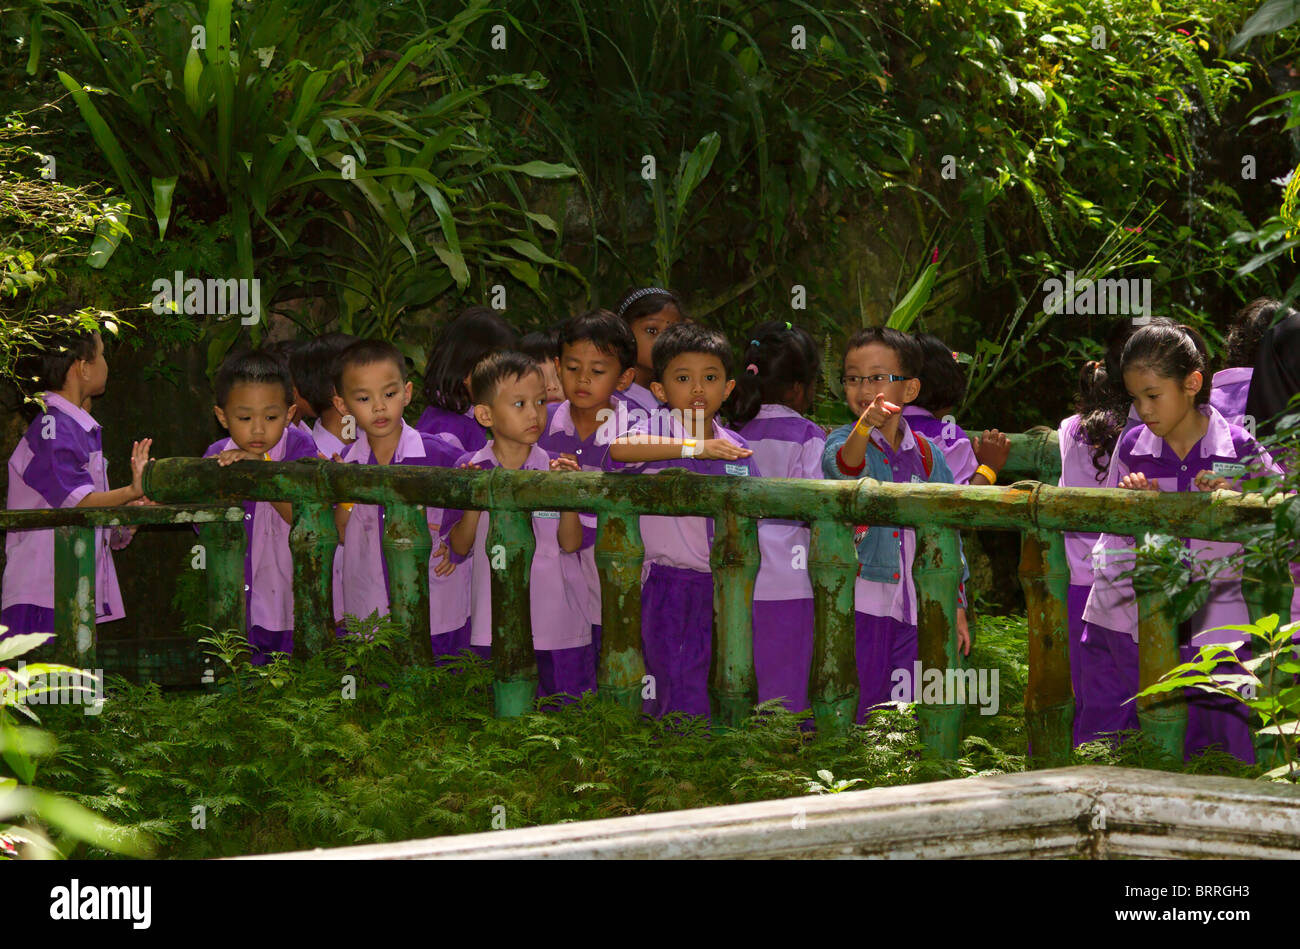 Malaysian schoolchildren in uniform on an outing to the Butterfly Park Kuala Lumpur. The children show a range of - Stock Image